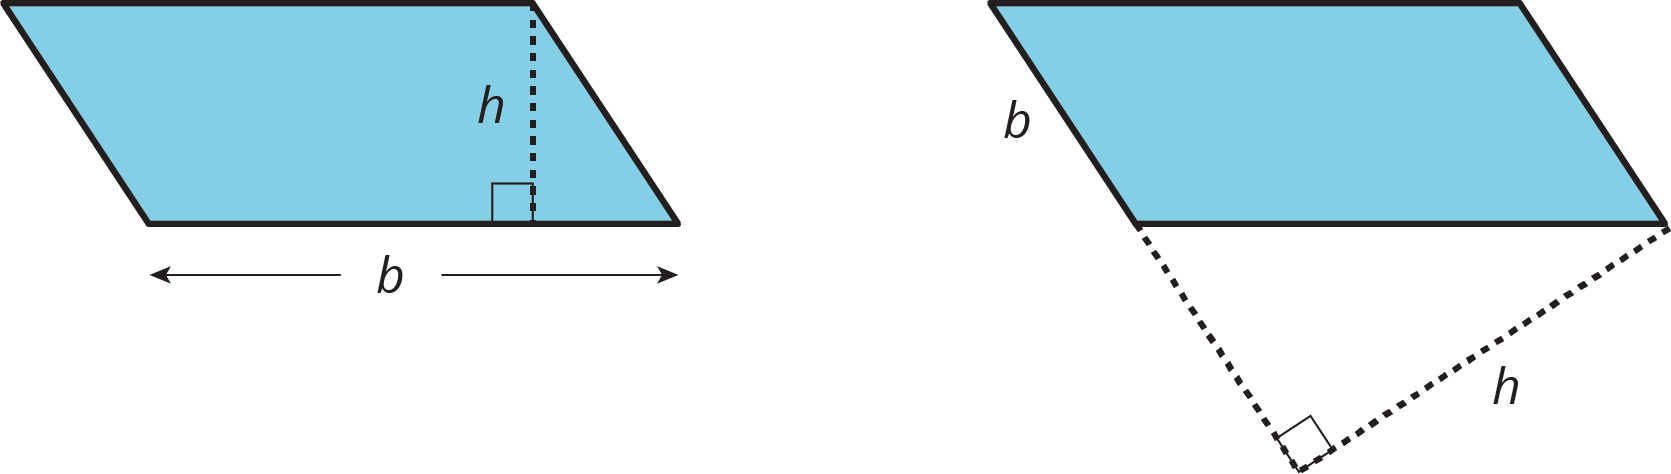 hight resolution of From Parallelograms to Triangles: Illustrative Mathematics